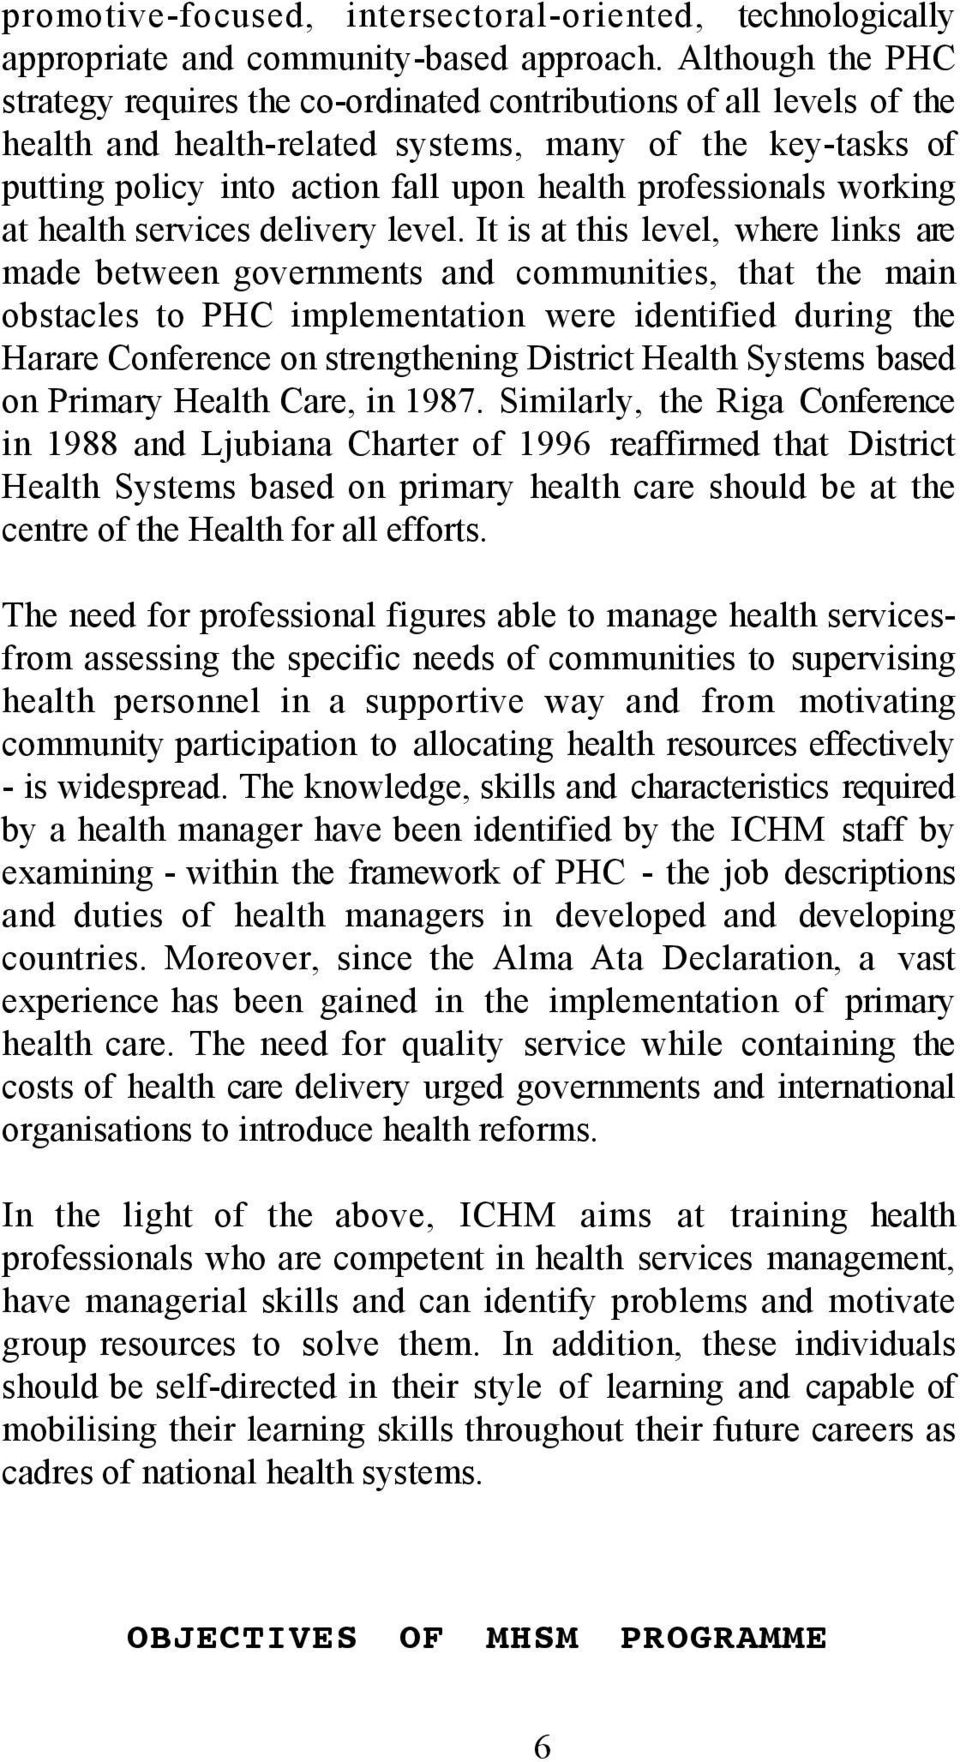 professionals working at health services delivery level.